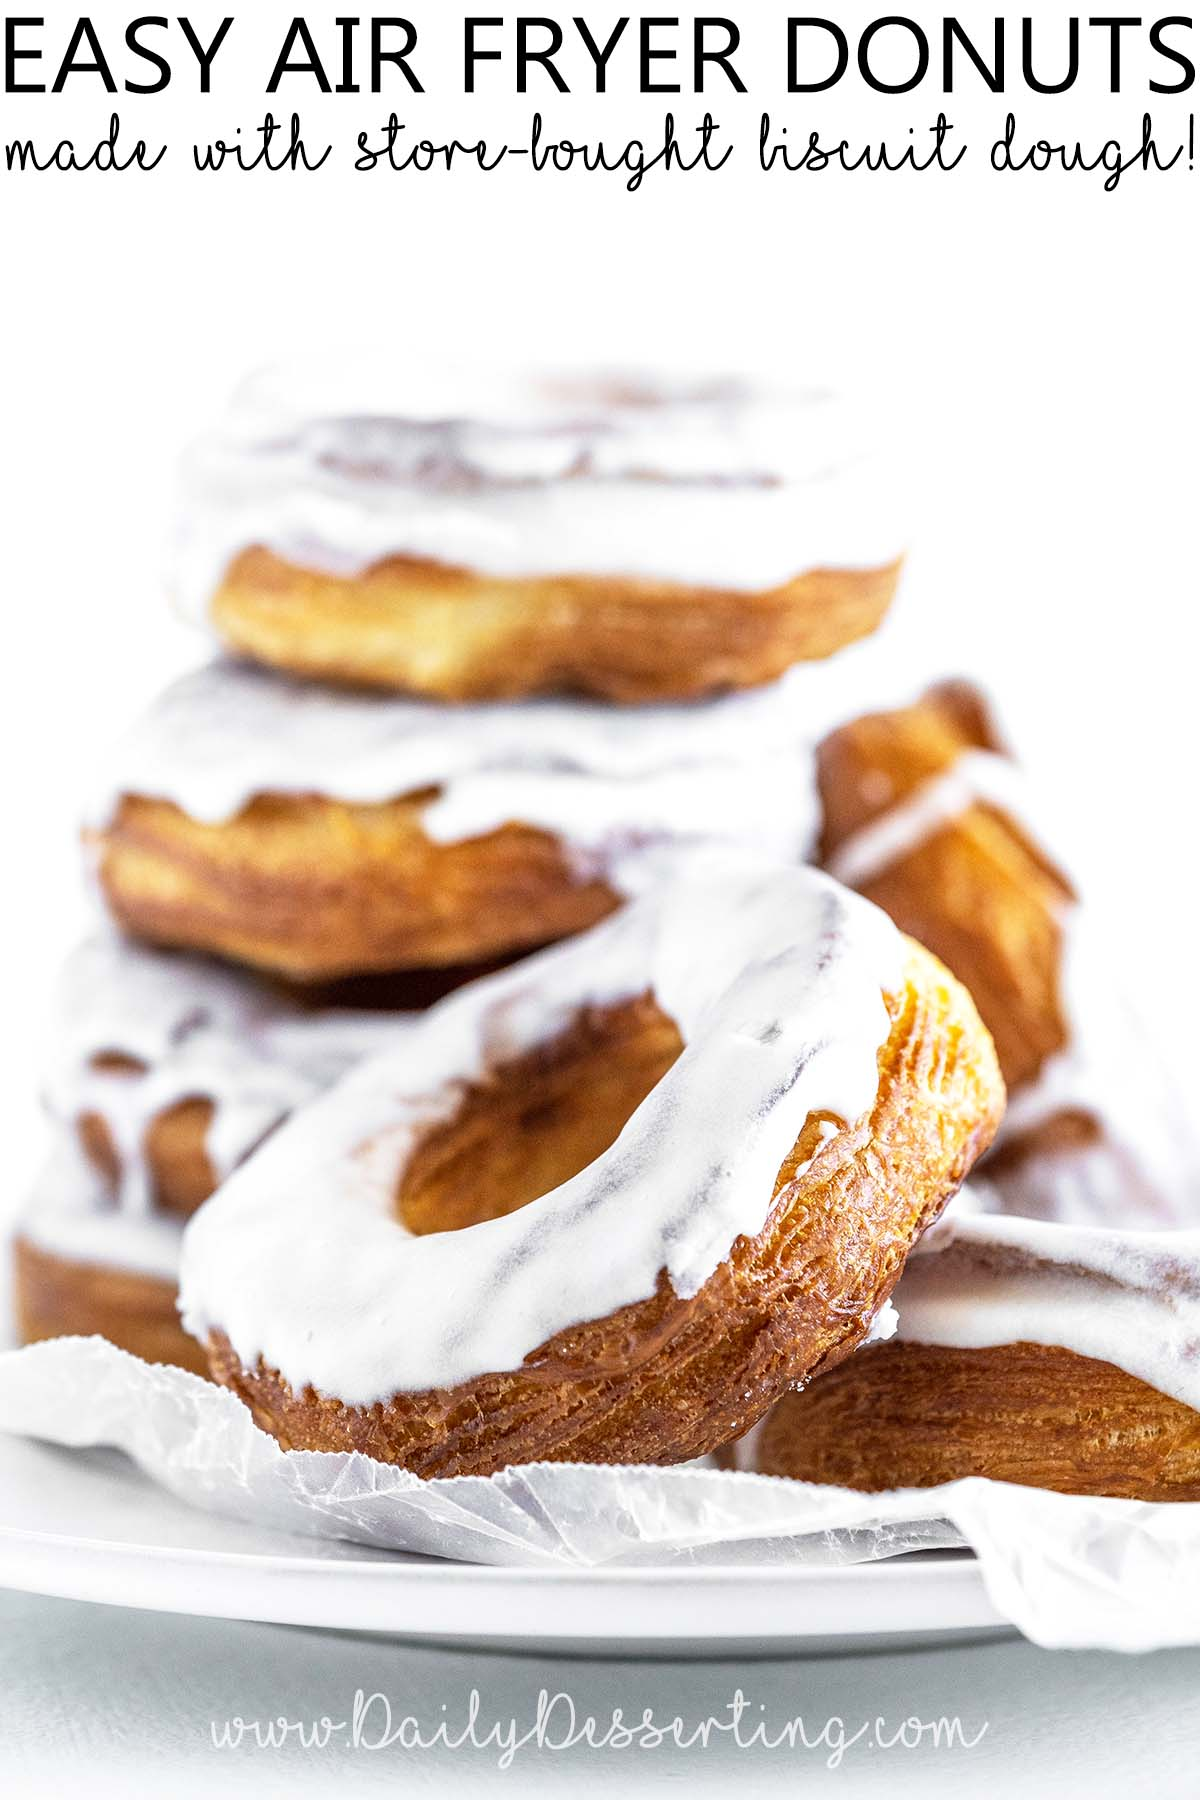 easy air fryer donuts graphic